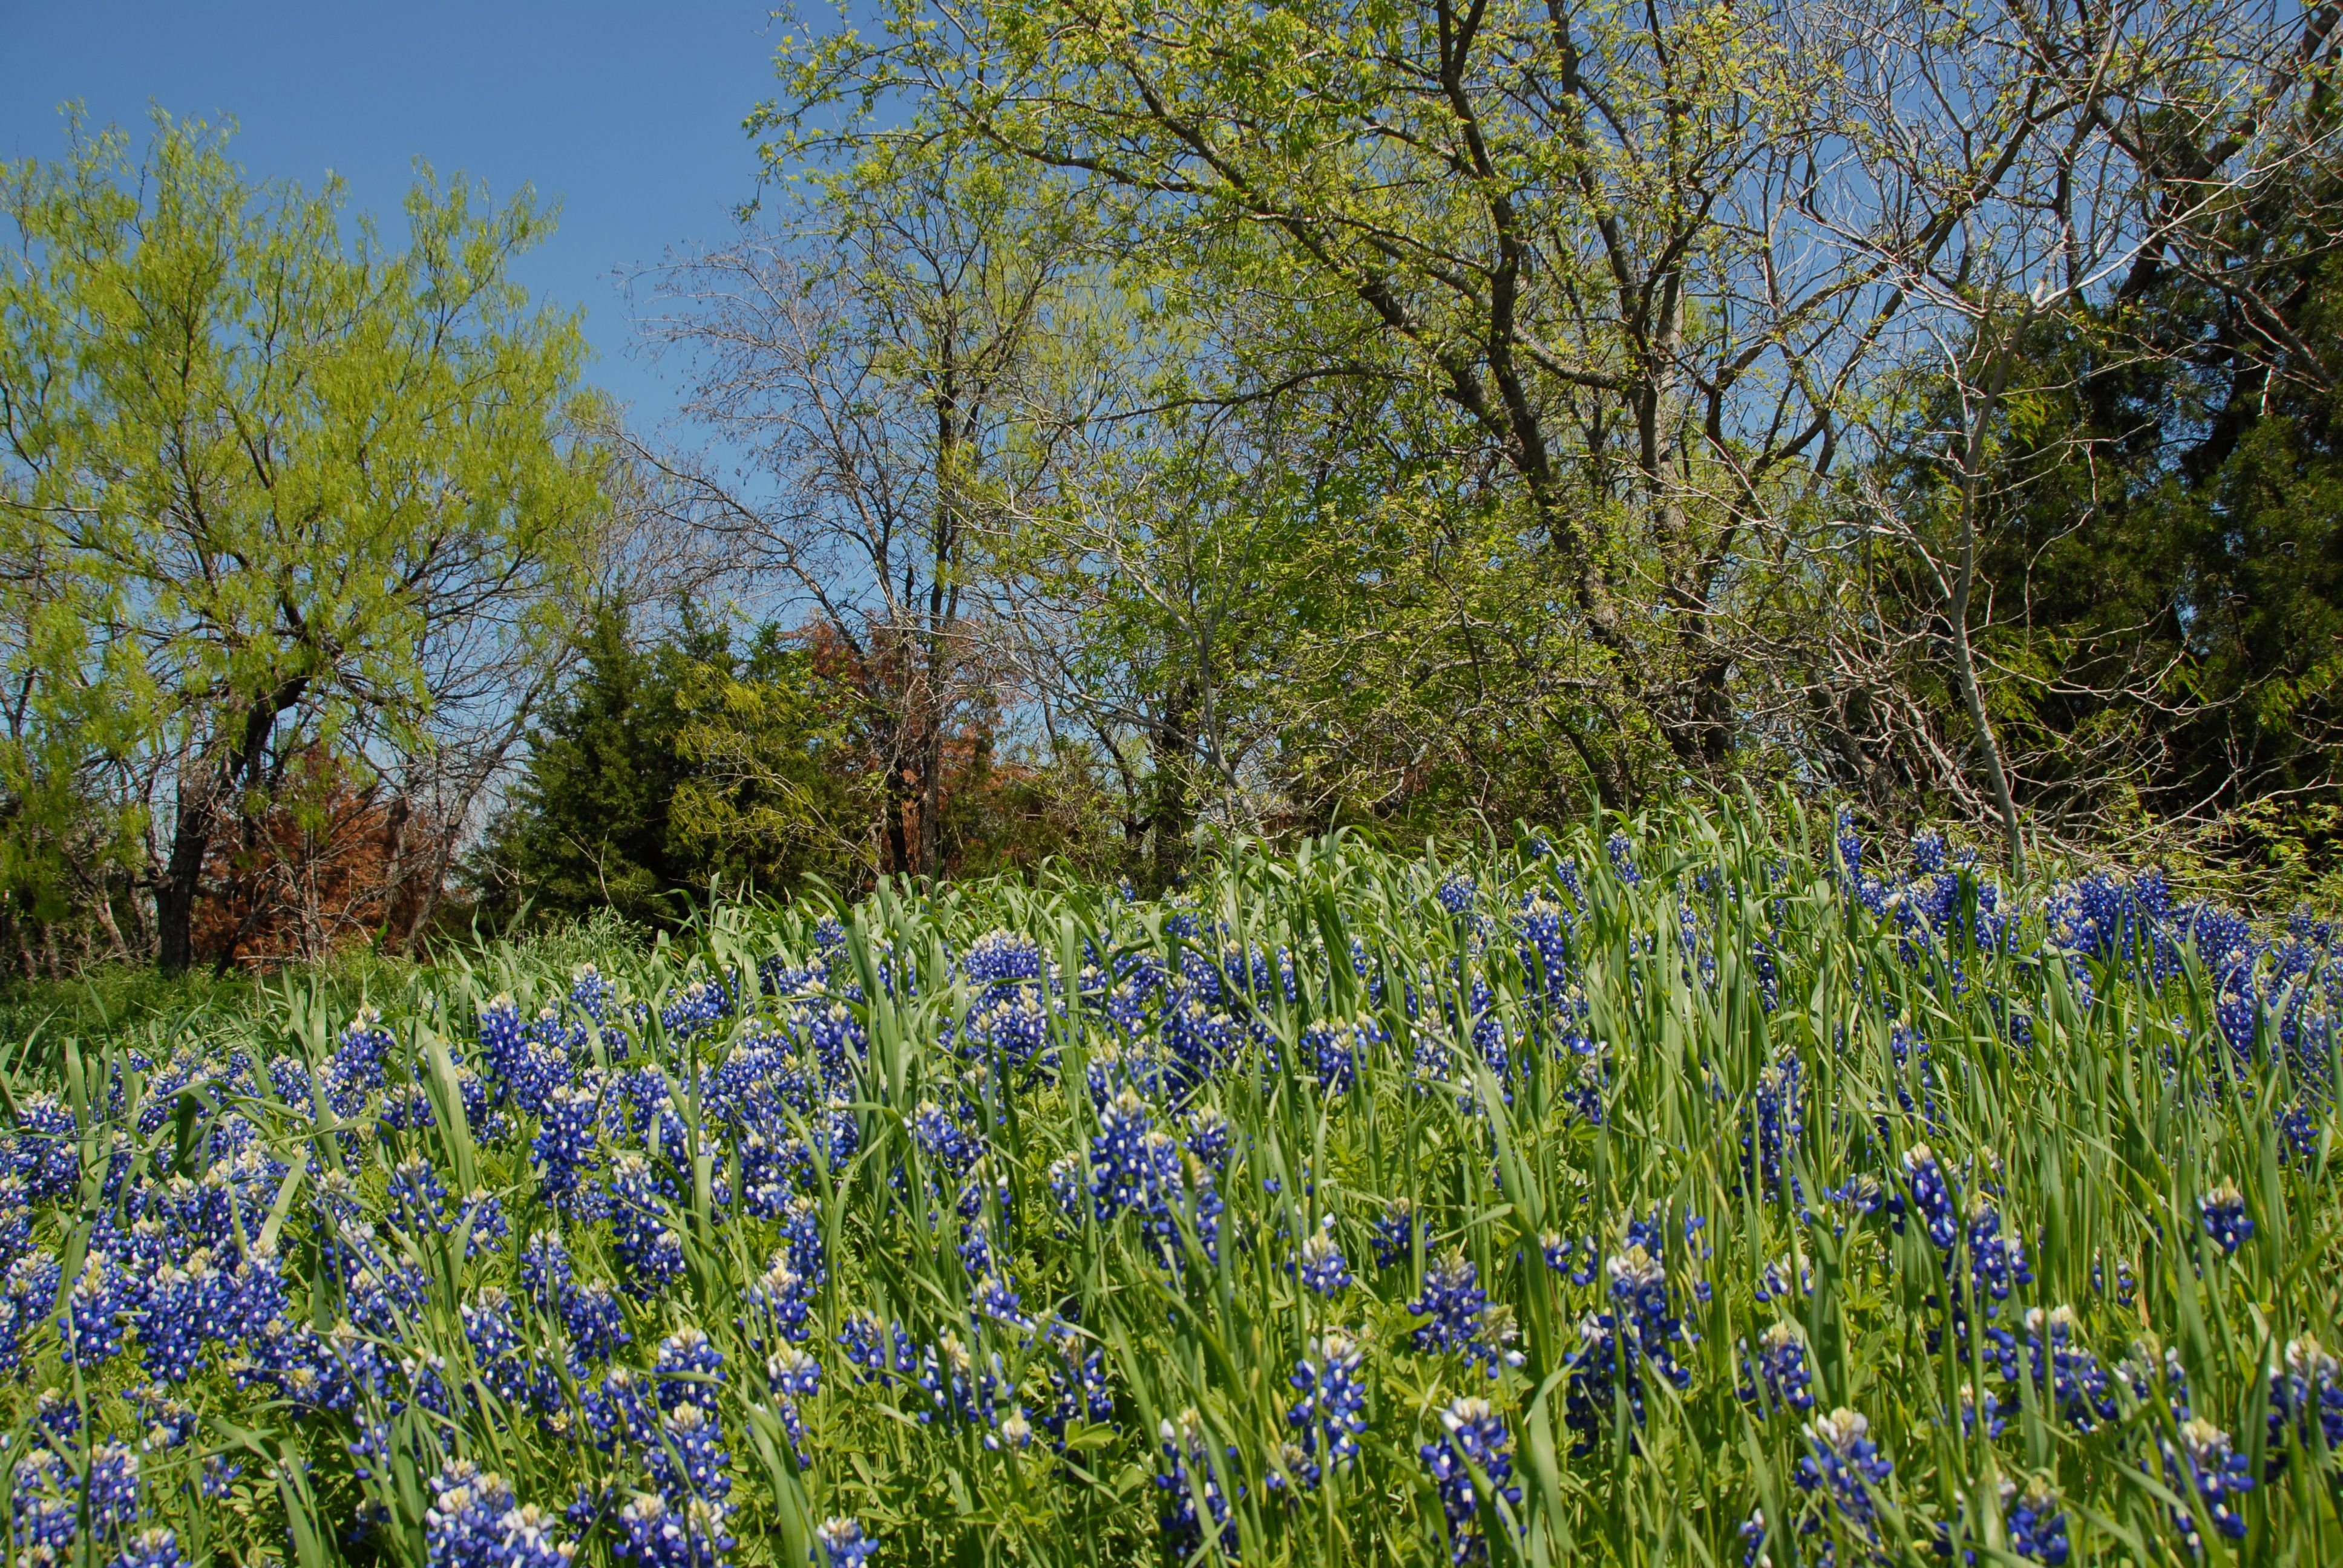 cedar hill state park is a great place to take pics of bluebonnets